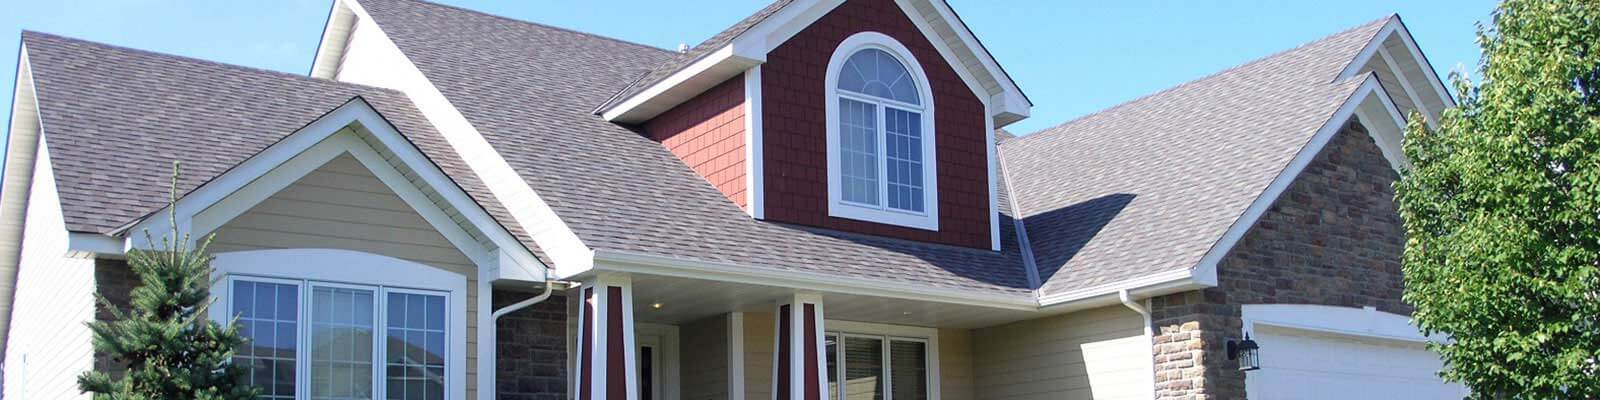 siding services minneapolis